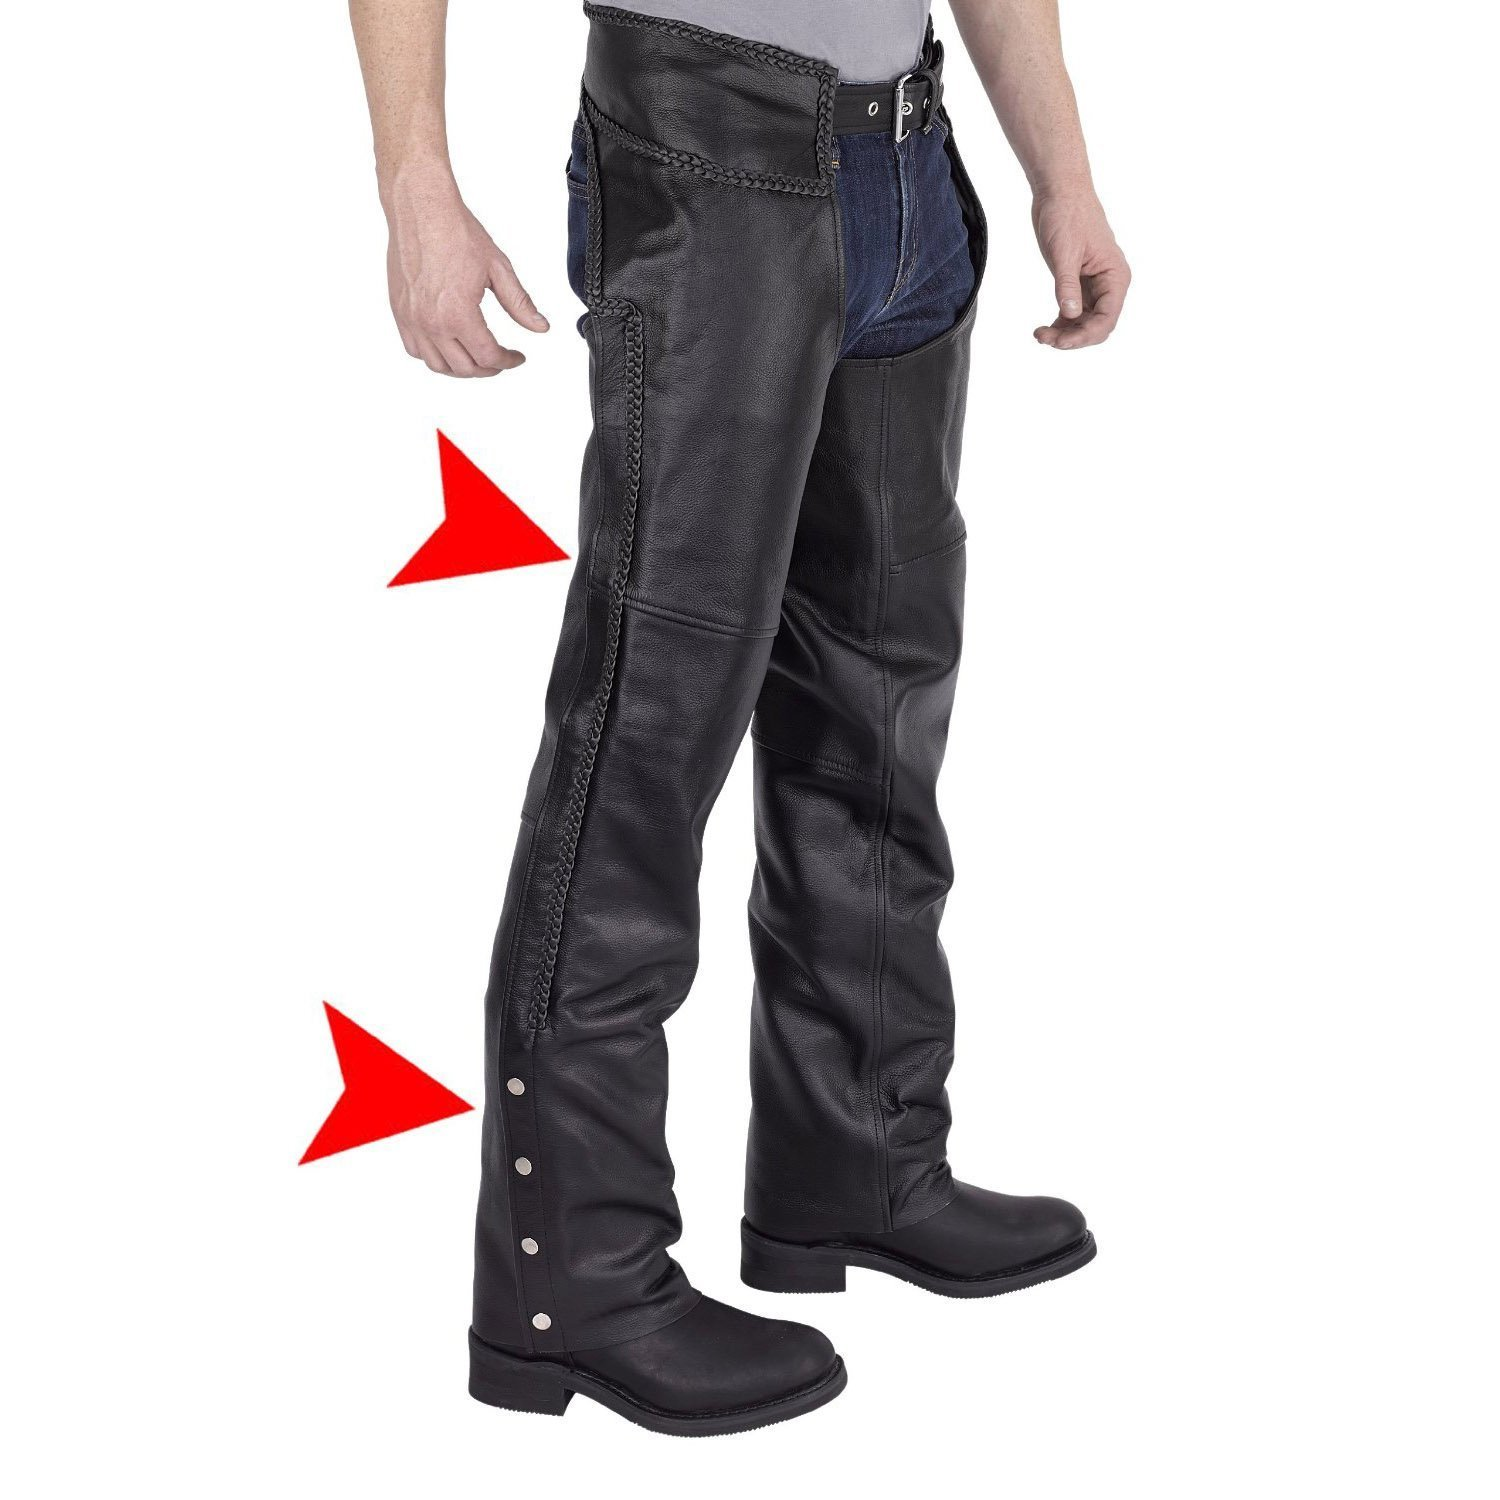 Viking Cycle Leather Chaps - Braided Motorcycle Leather Chaps (3X-Large)